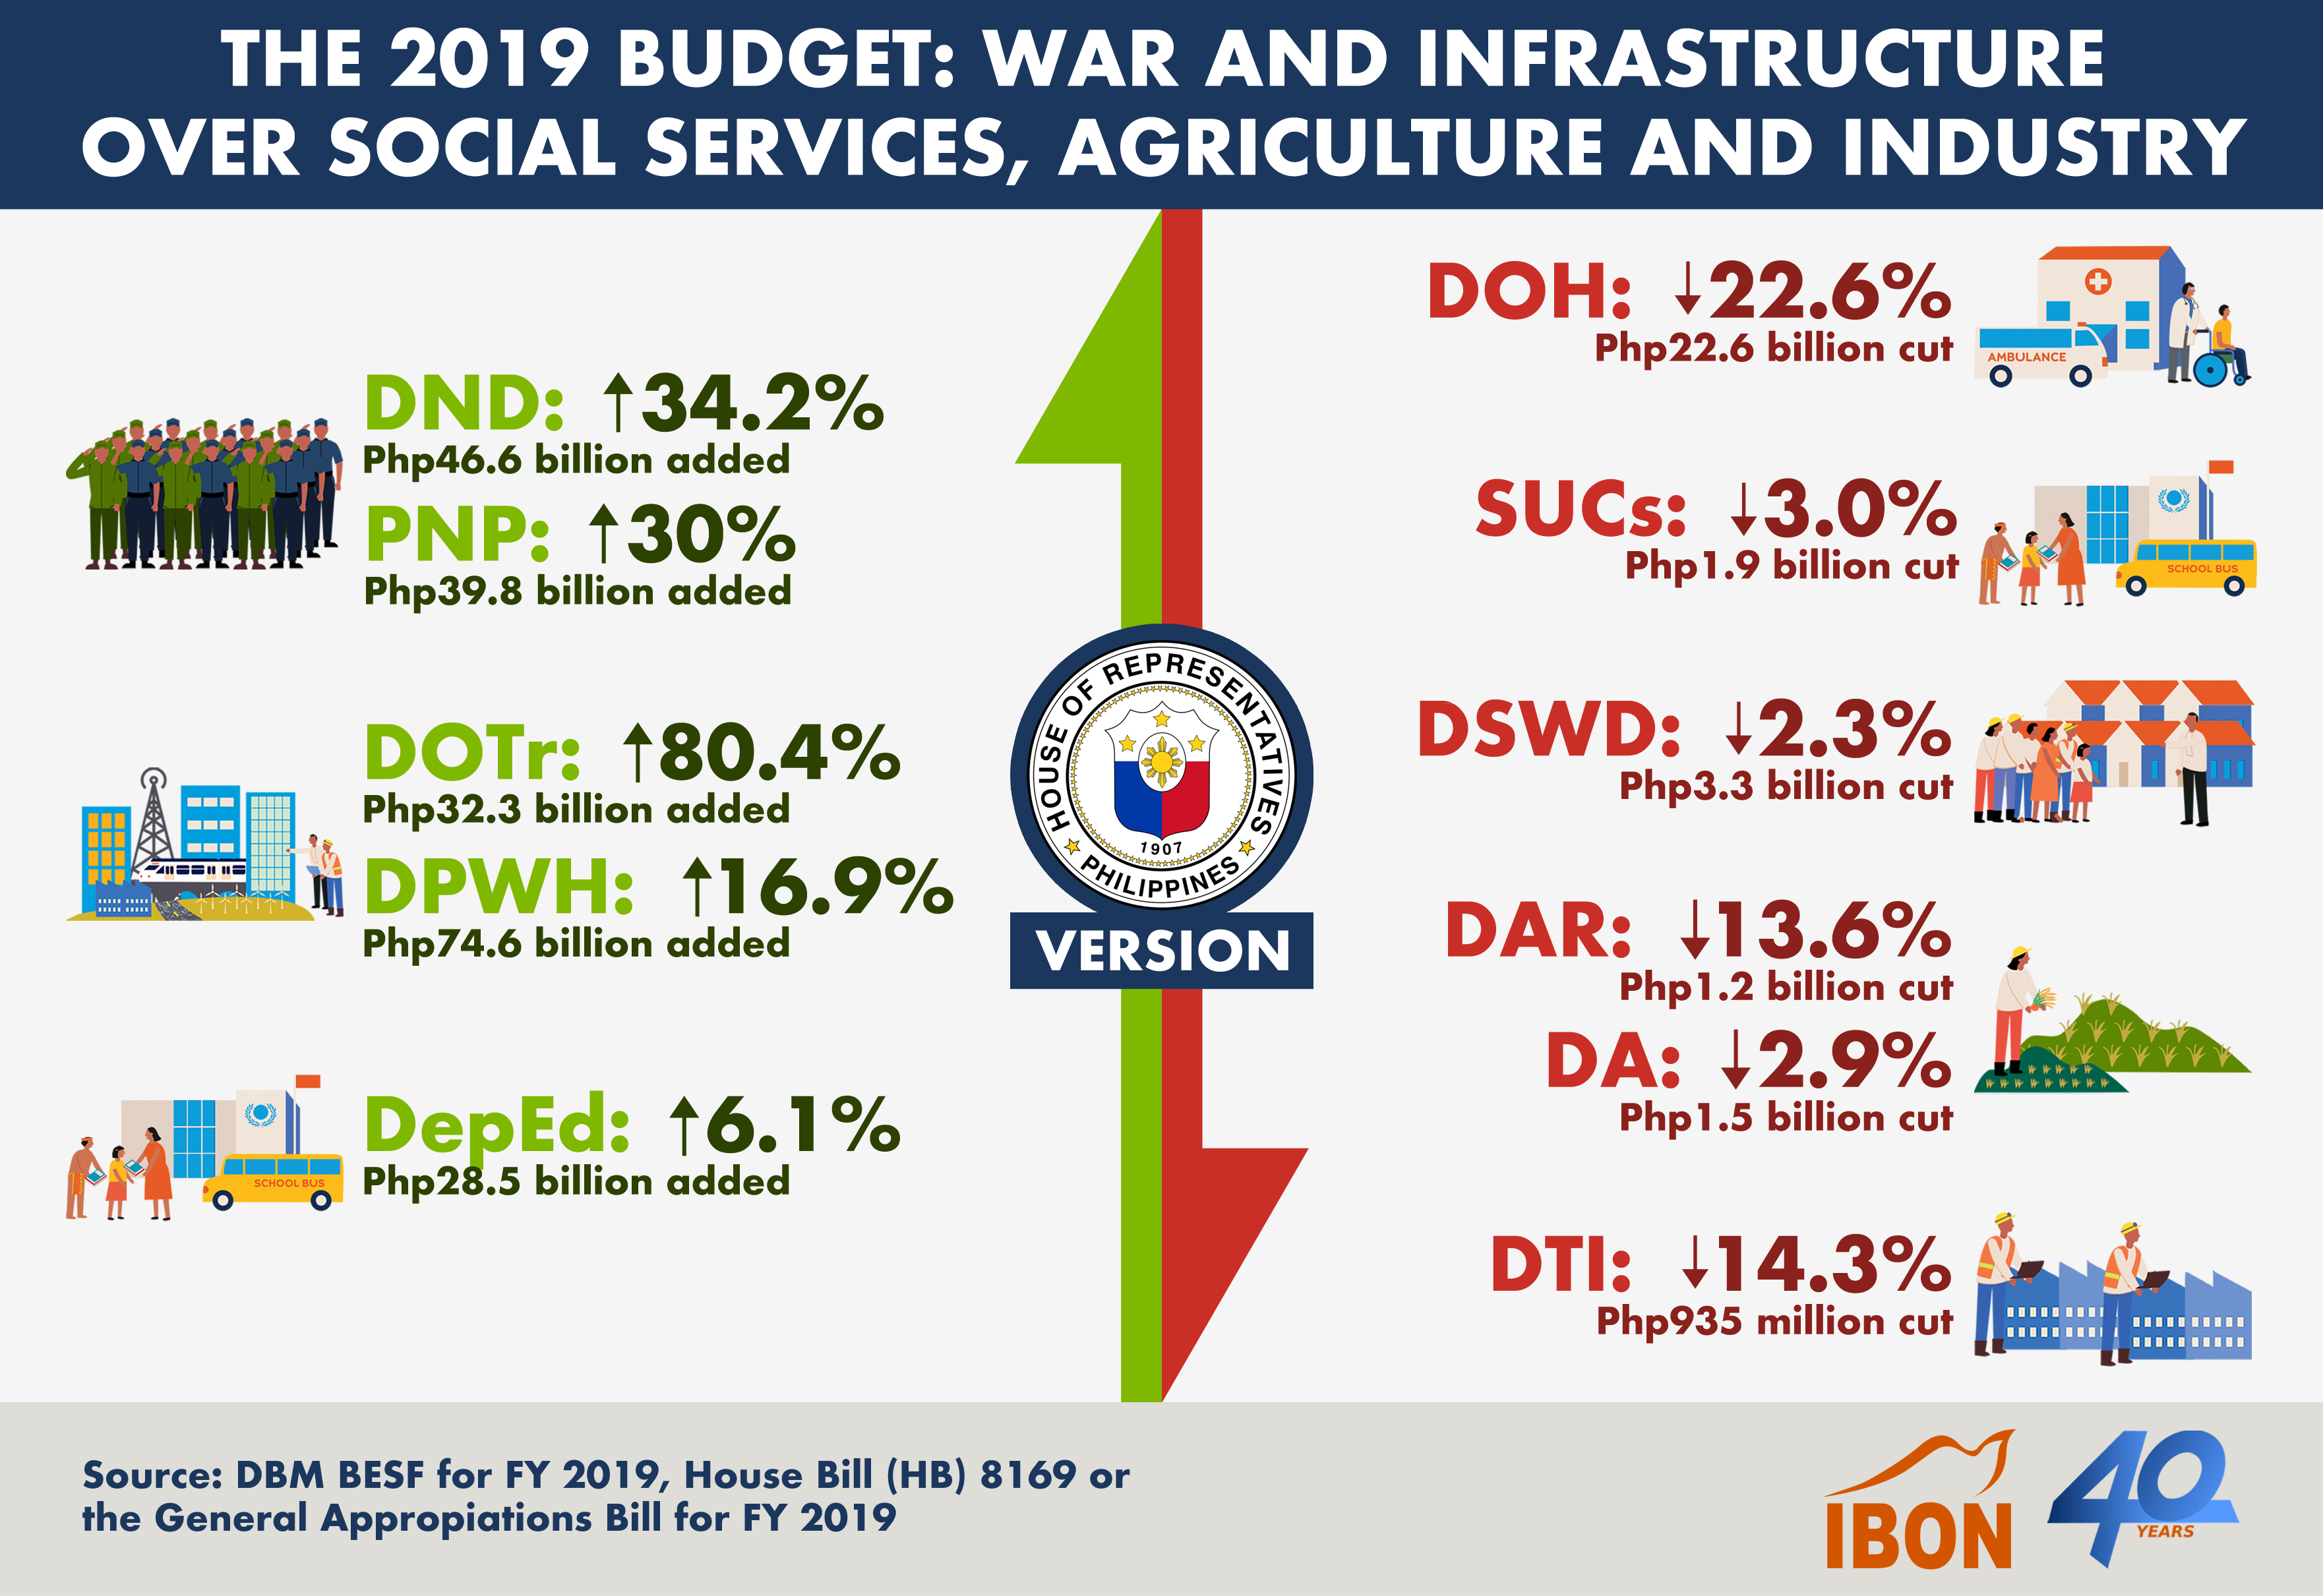 20192601 The 2019 Budget - HOR Version